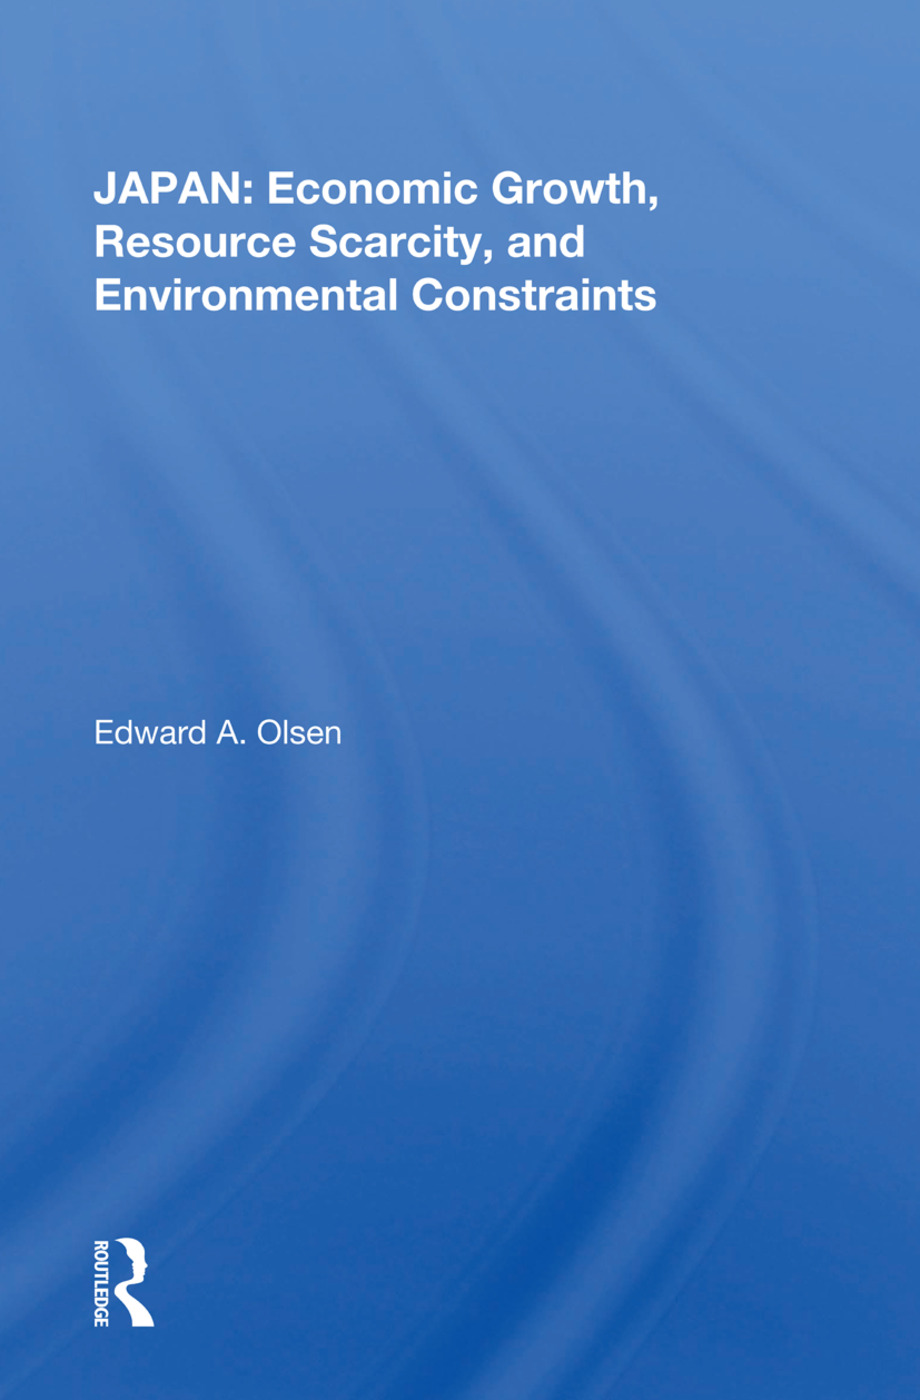 Japan: Economic Growth, Resource Scarcity, And Environmental Constraints book cover